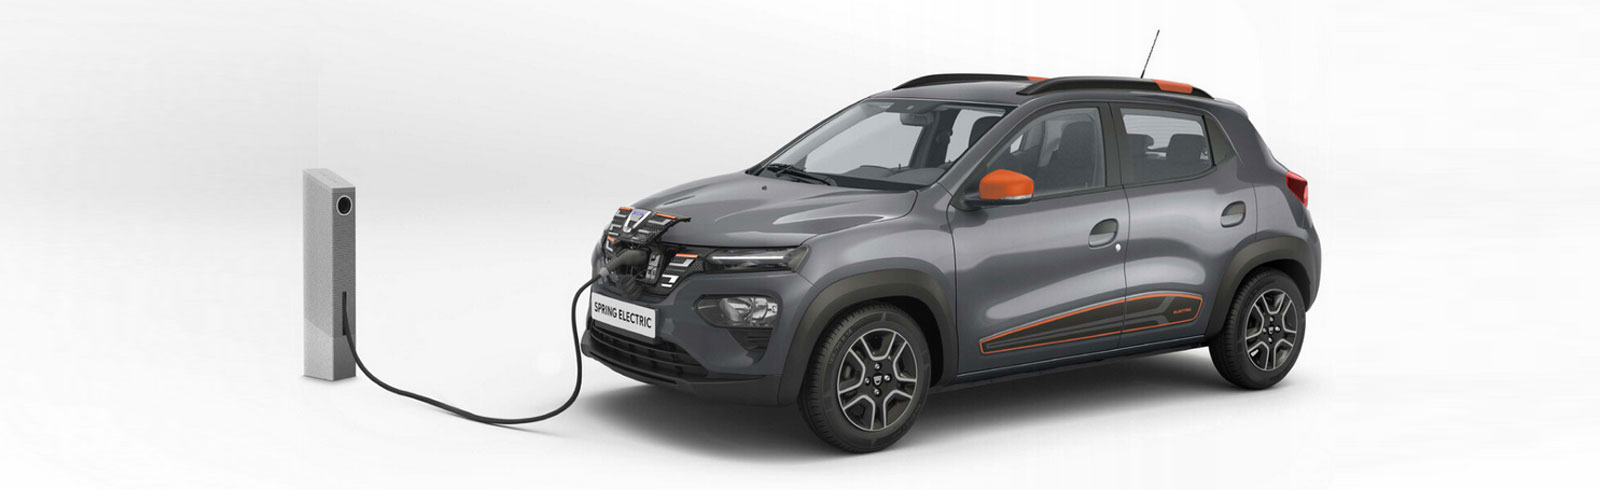 Renault unveils the Dacia Spring Electric production version